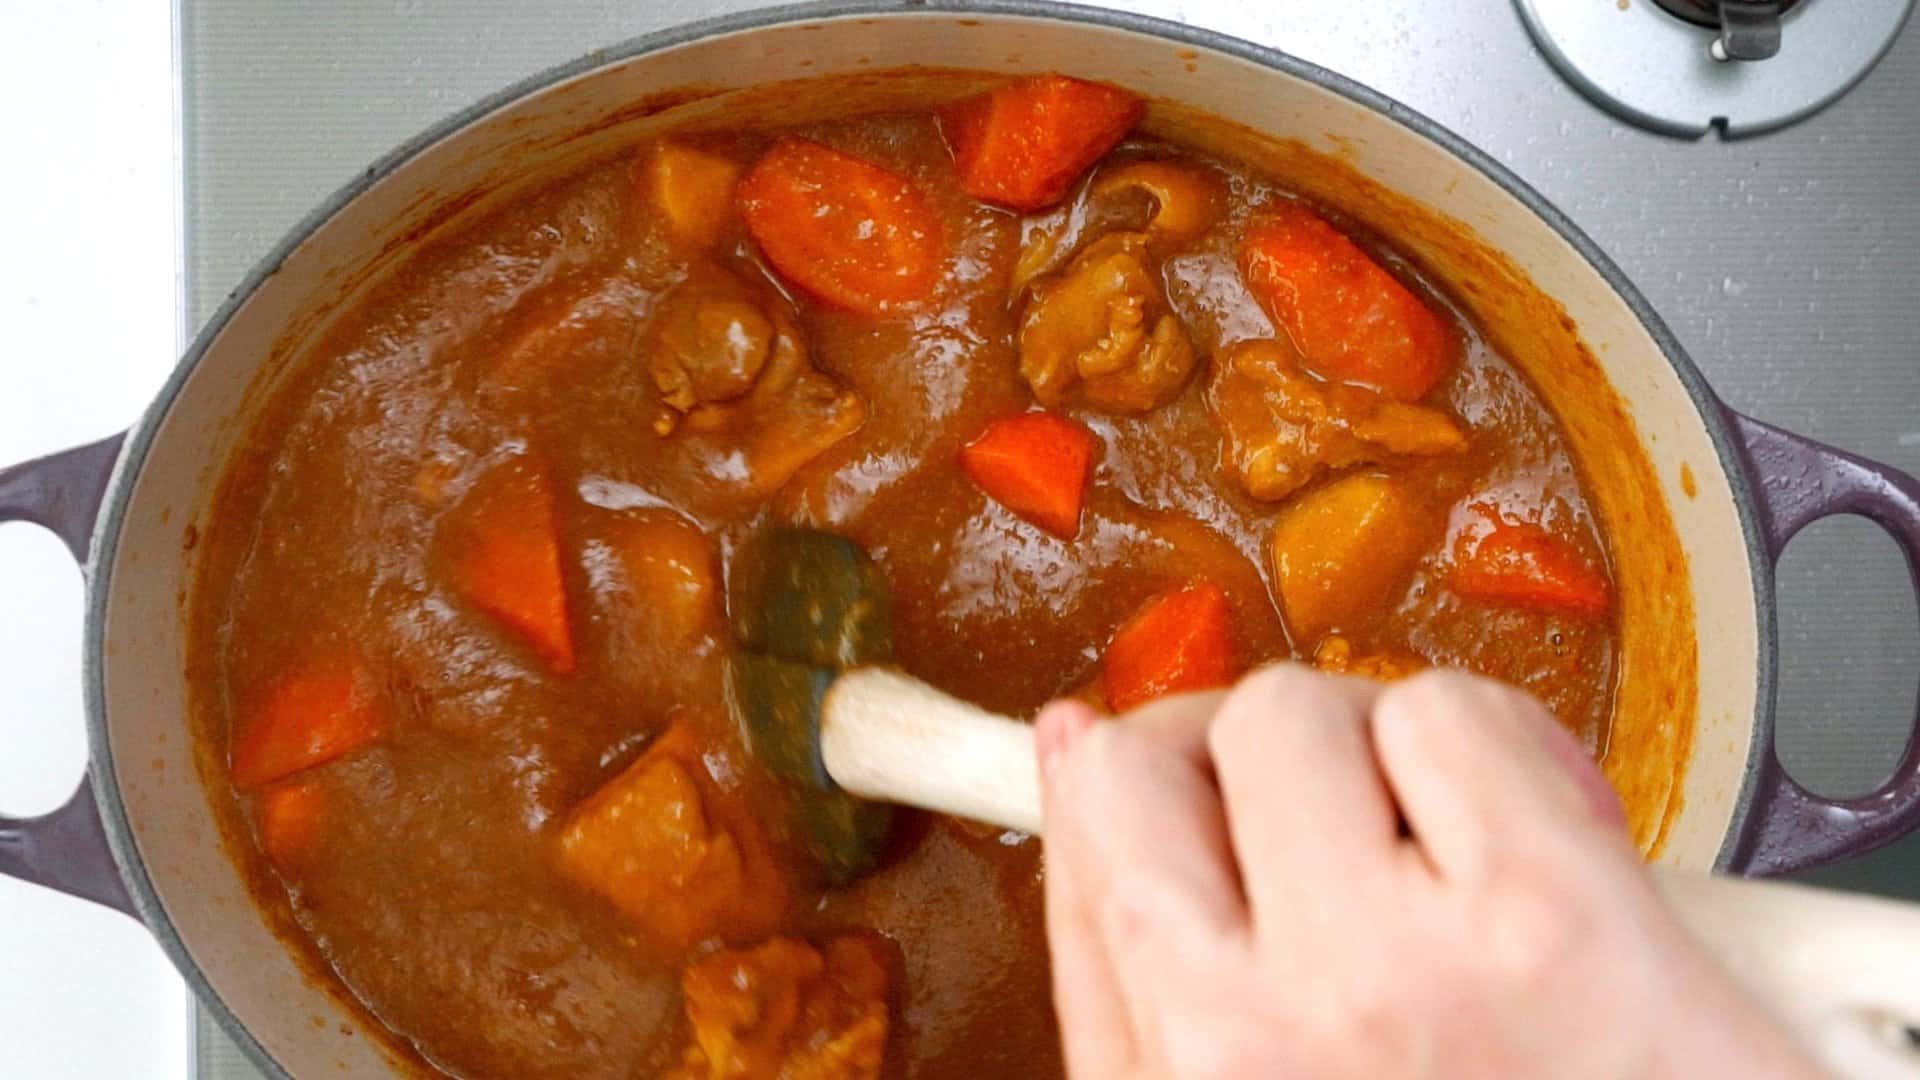 As the curry cooks down it takes on a darker color.